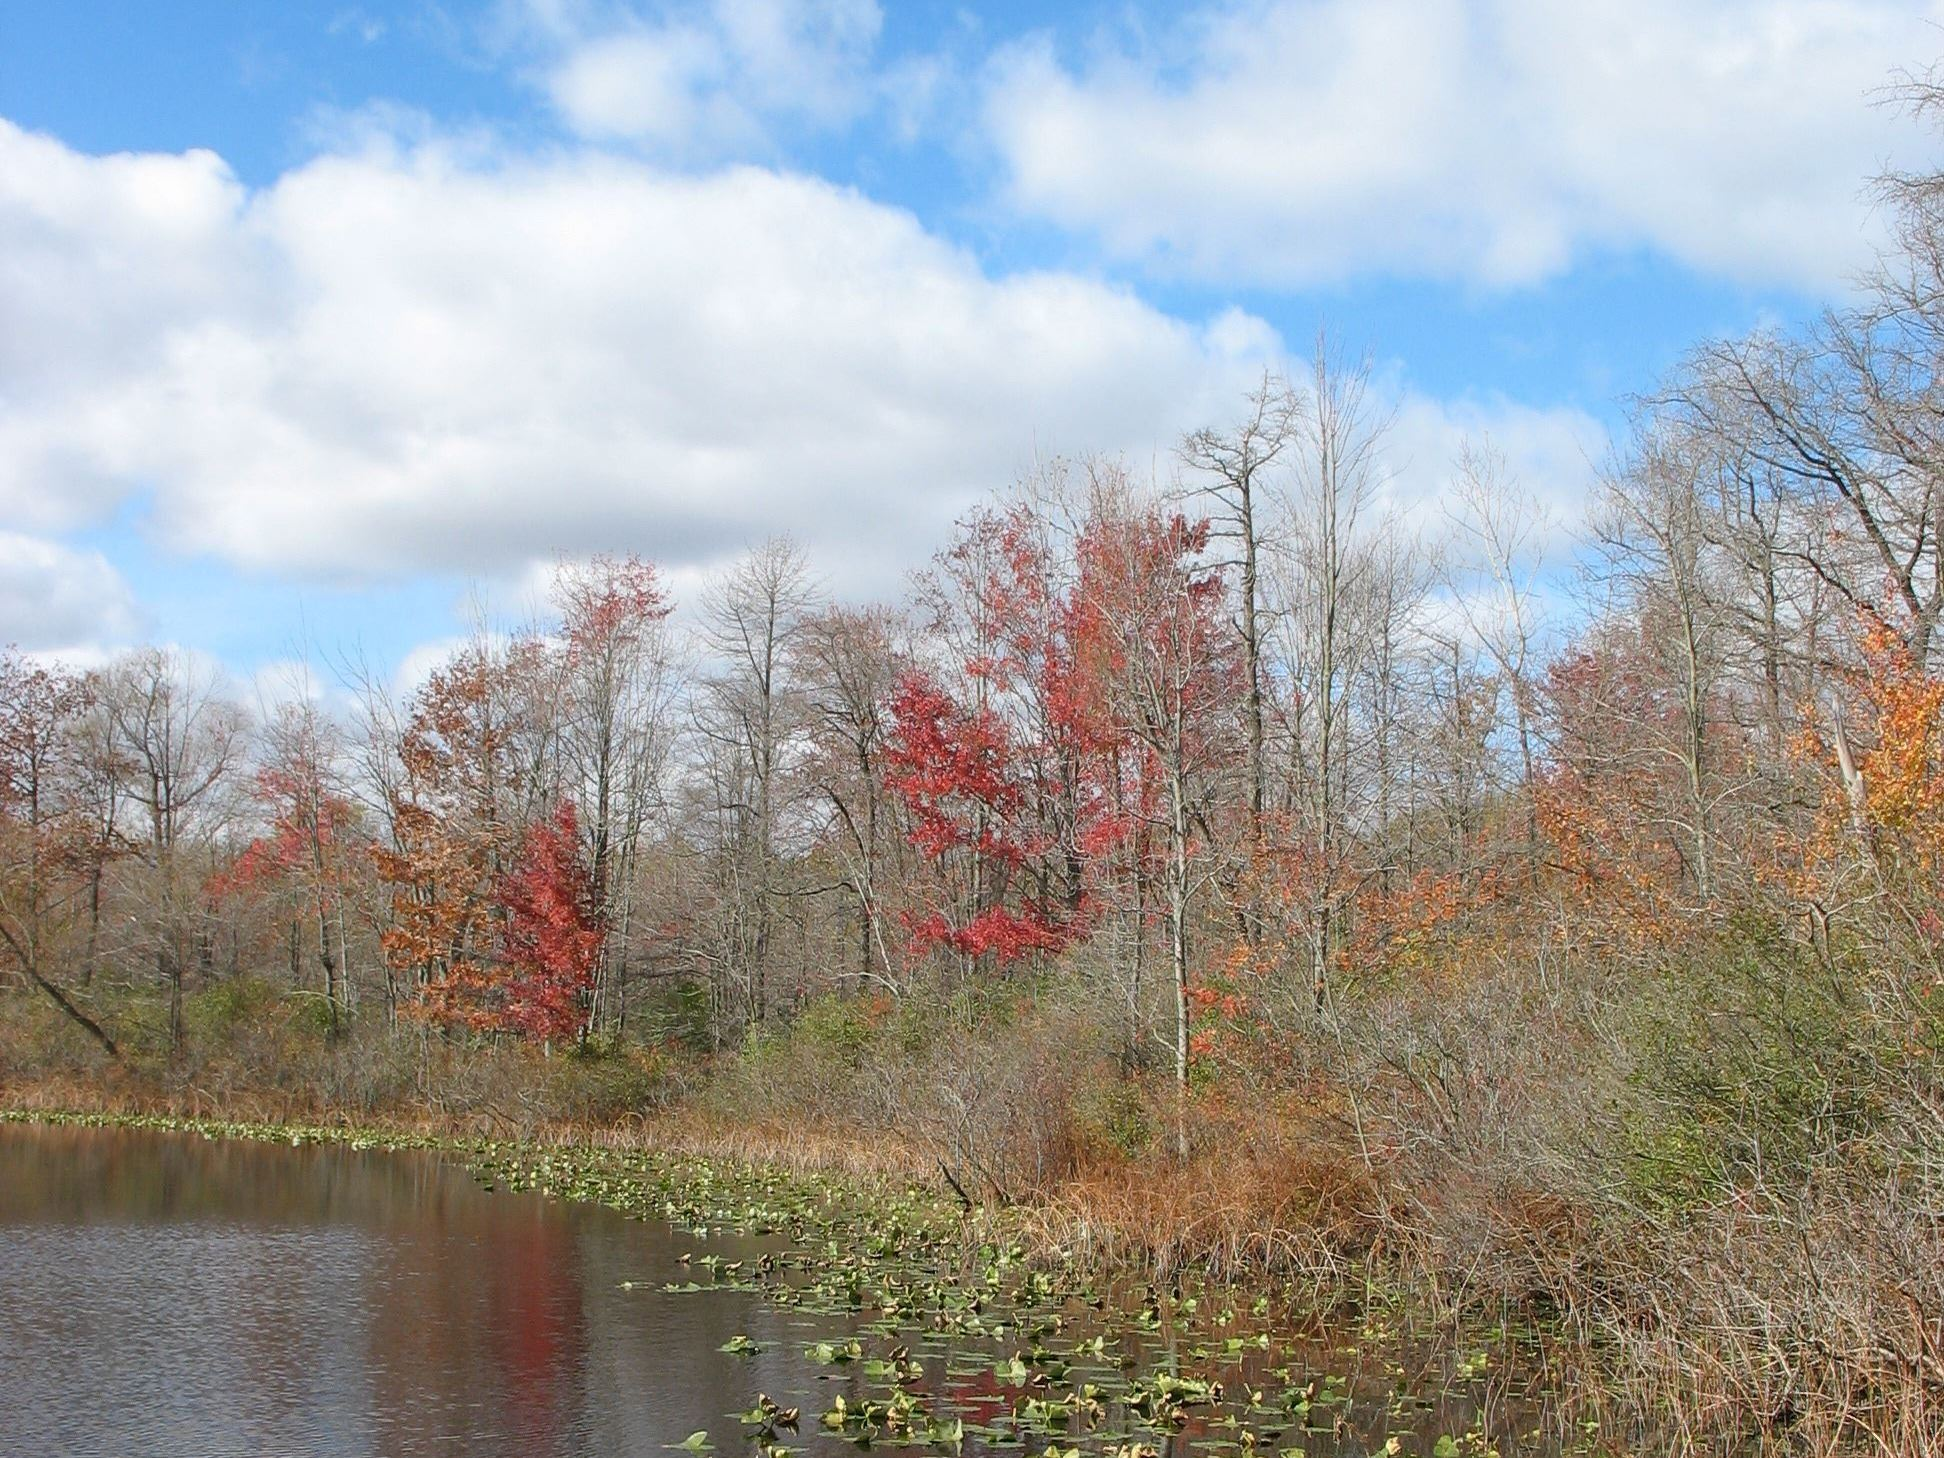 Spicer Lake nature preserve autumn colors